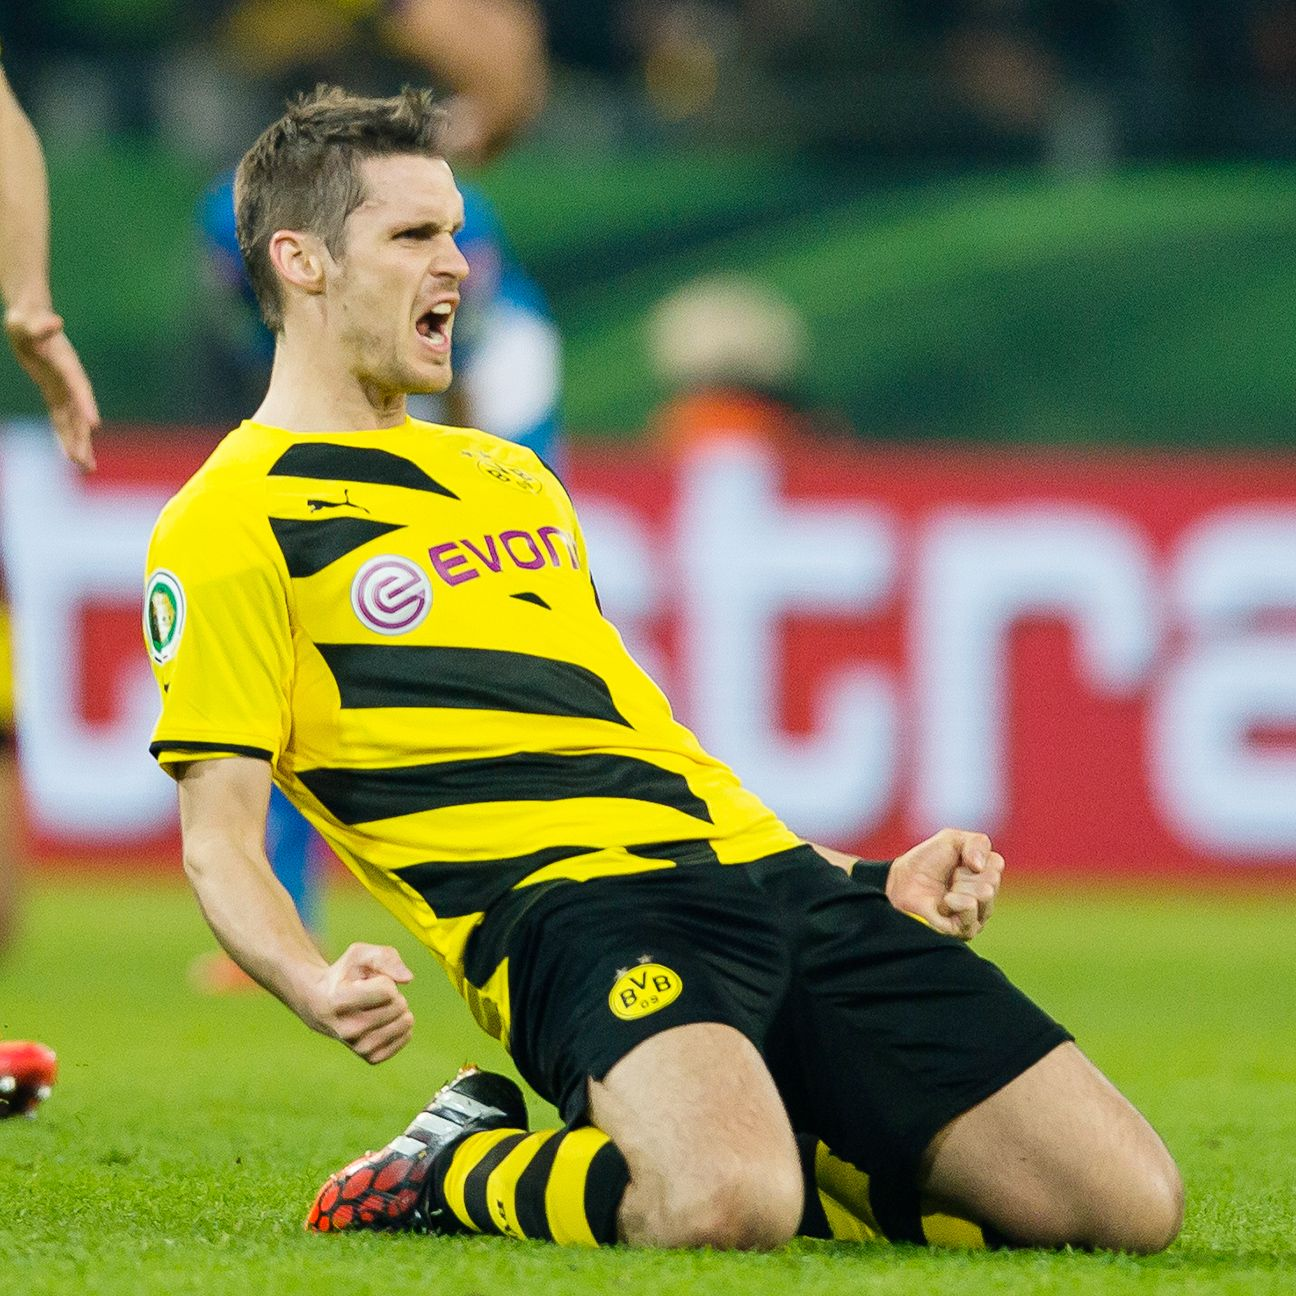 Sebastian Kehl's extra time goal helped Dortmund advance to a crucial DFB-Pokal semifinal.